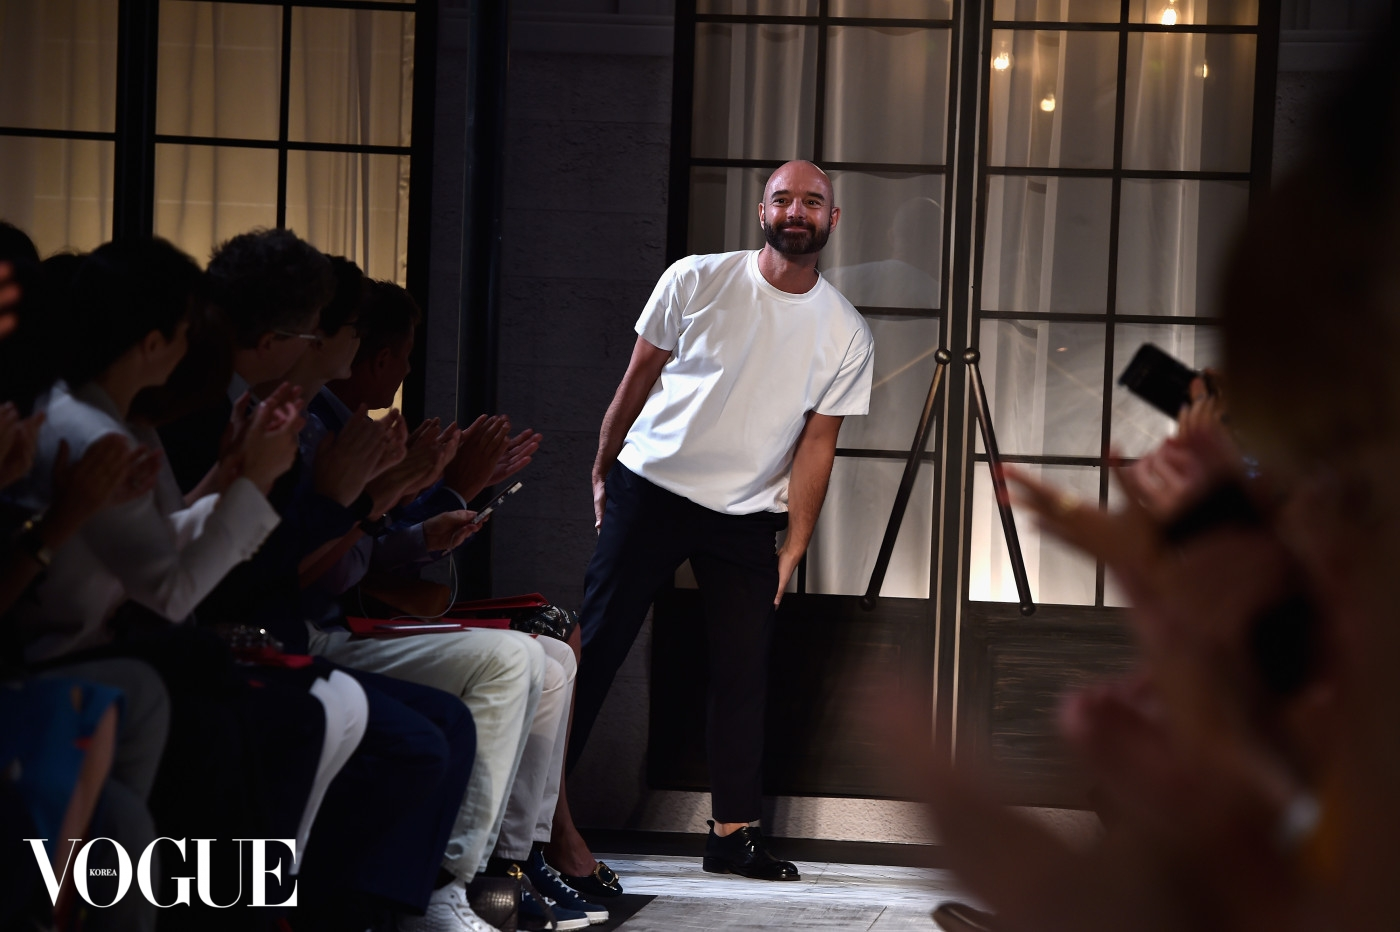 PARIS, FRANCE - JULY 06: Designer Bertrand Guyon poses at the end of the runway during the Schiaparelli show as part of Paris Fashion Week Haute Couture Fall/Winter 2015/2016 on July 6, 2015 in Paris, France.  (Photo by Pascal Le Segretain/Getty Images)